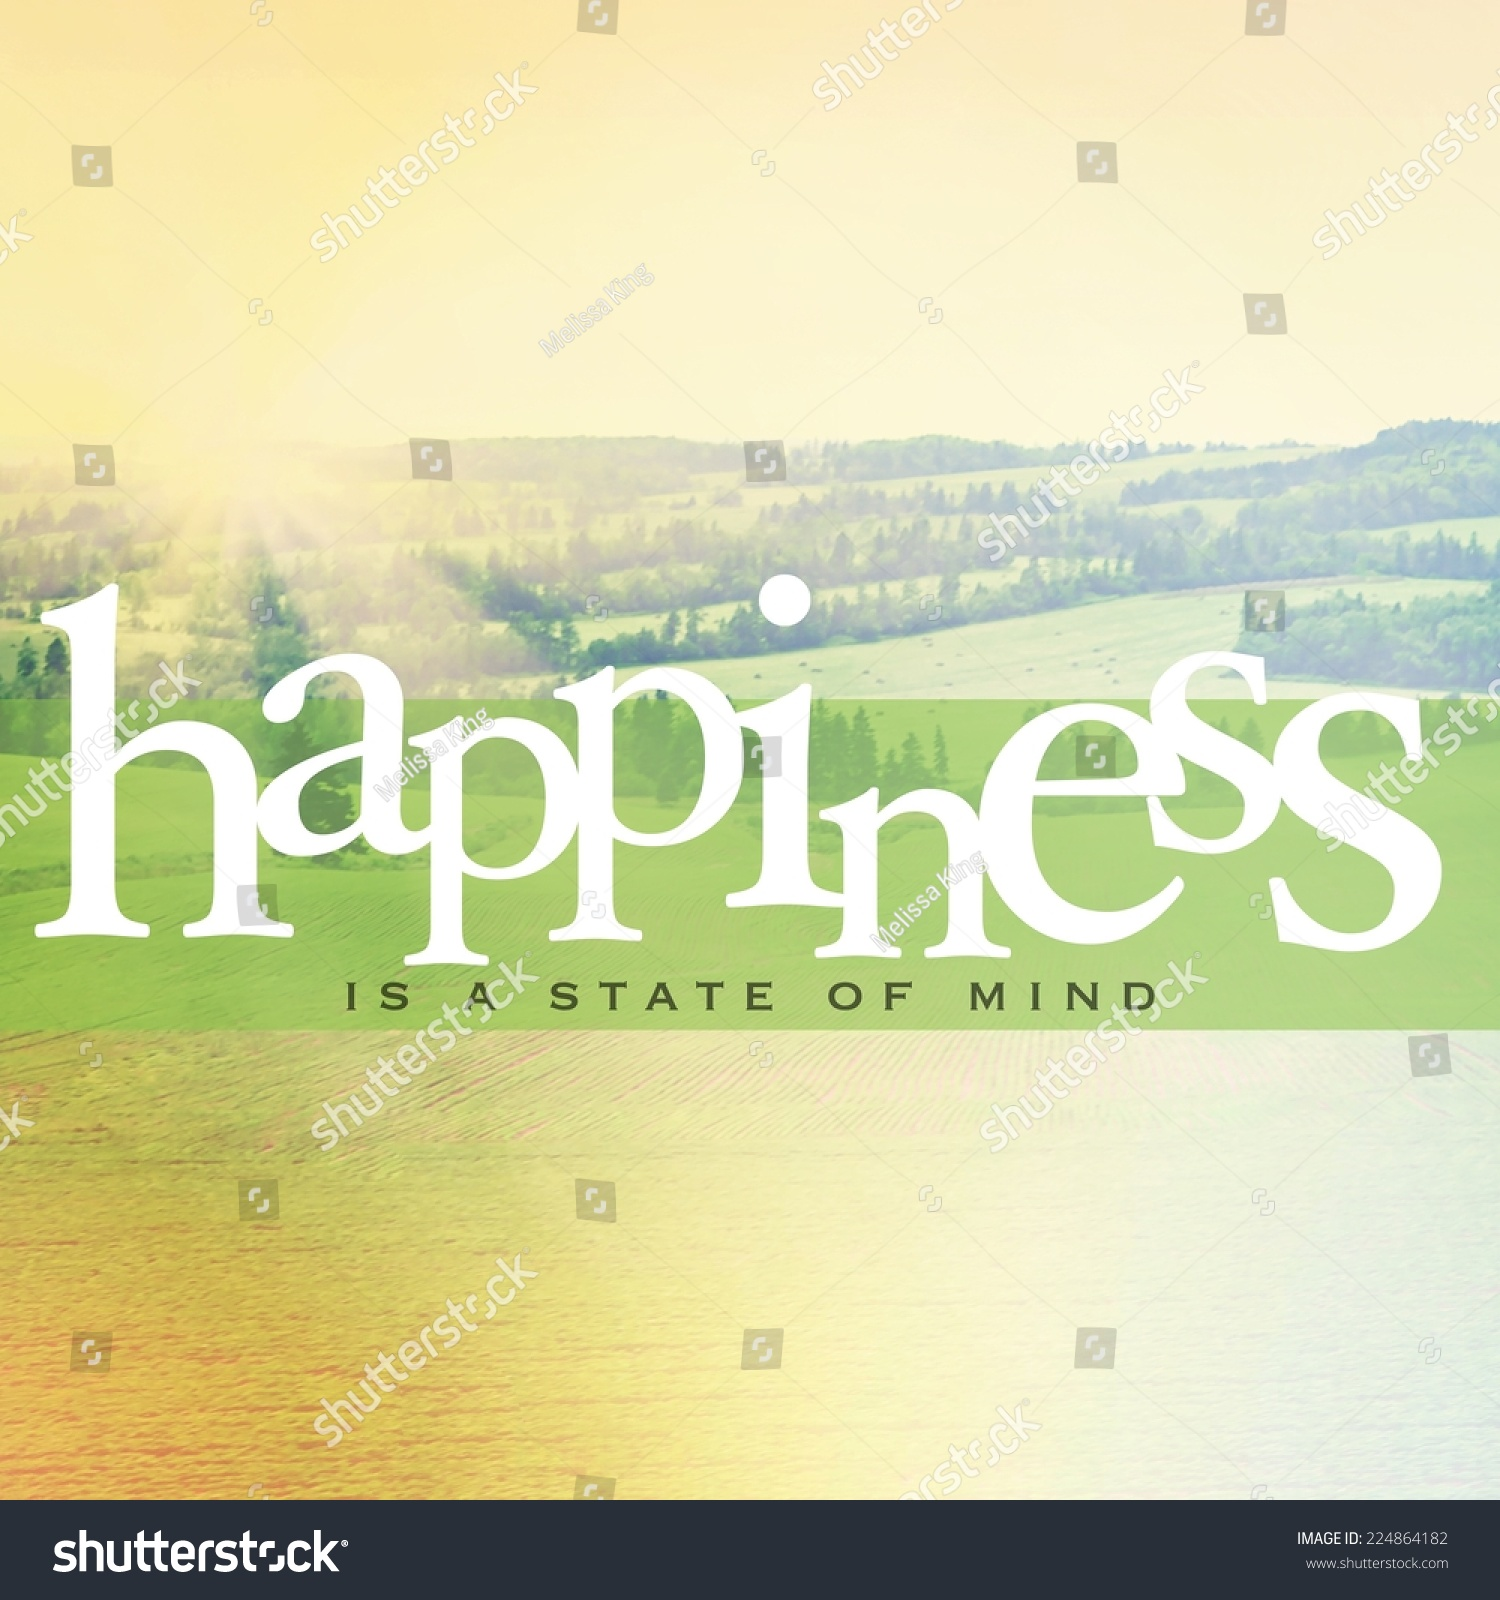 Inspirational Typographic Quote Happiness State Mind Stock Photo